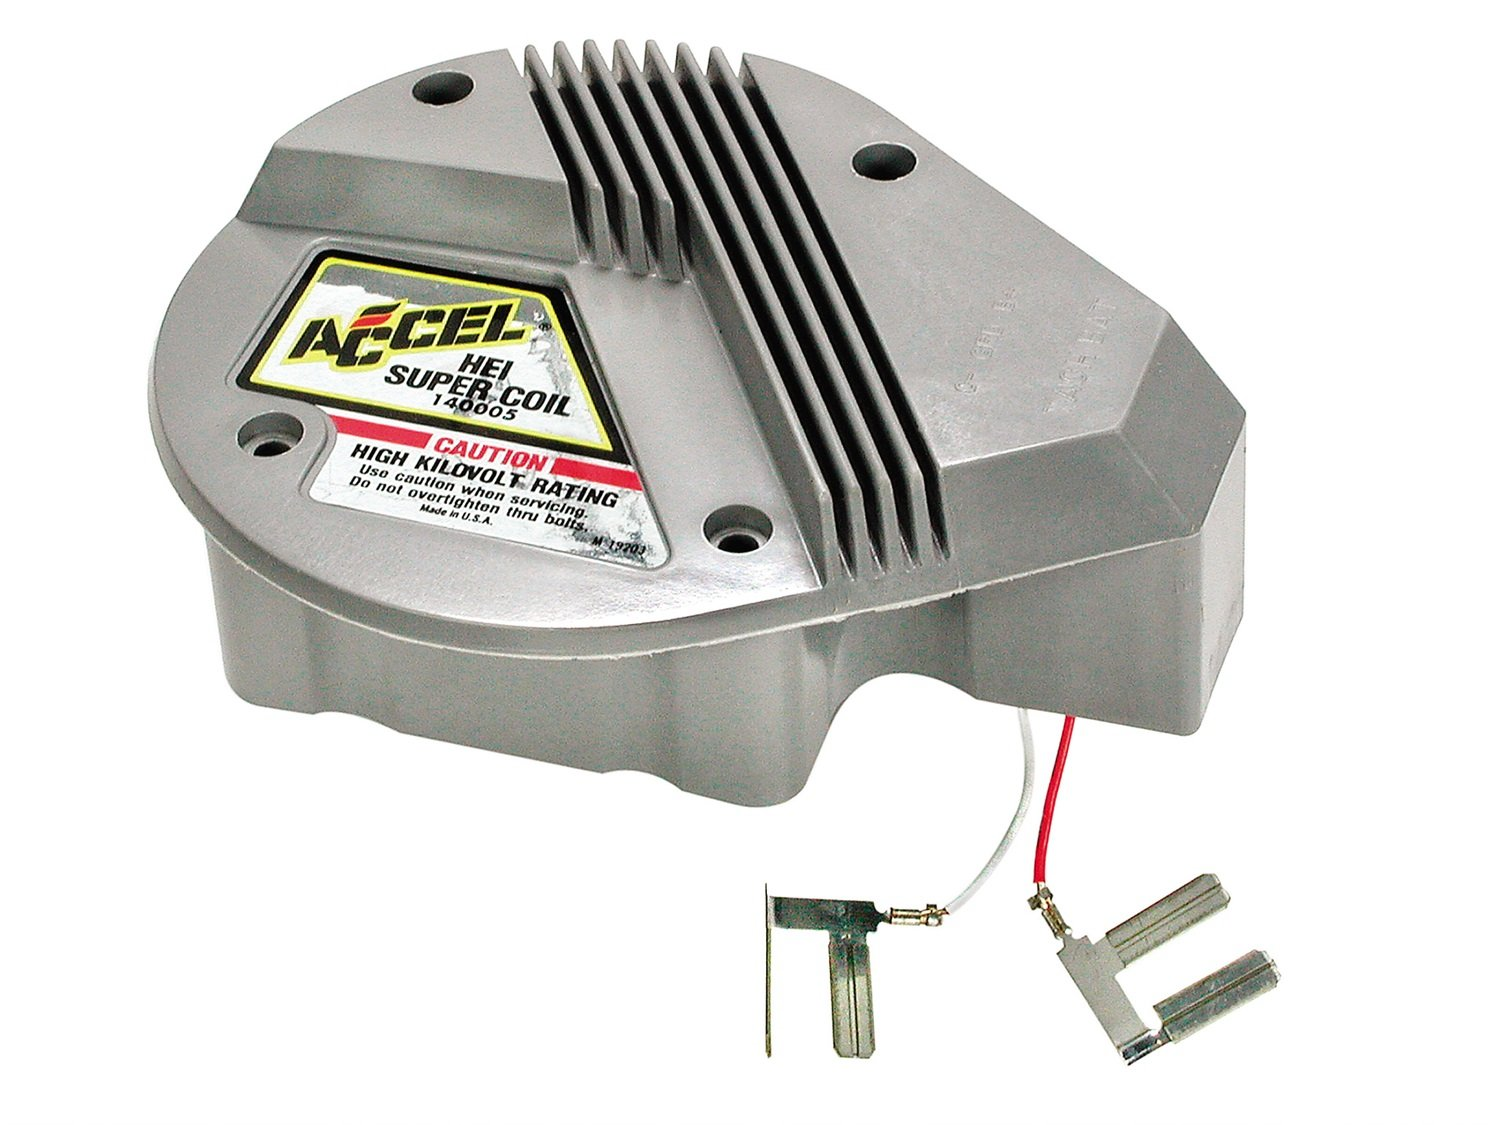 ACCEL 140005 HEI Red and White In-Cap Super Coil nobrandname ACC 140005